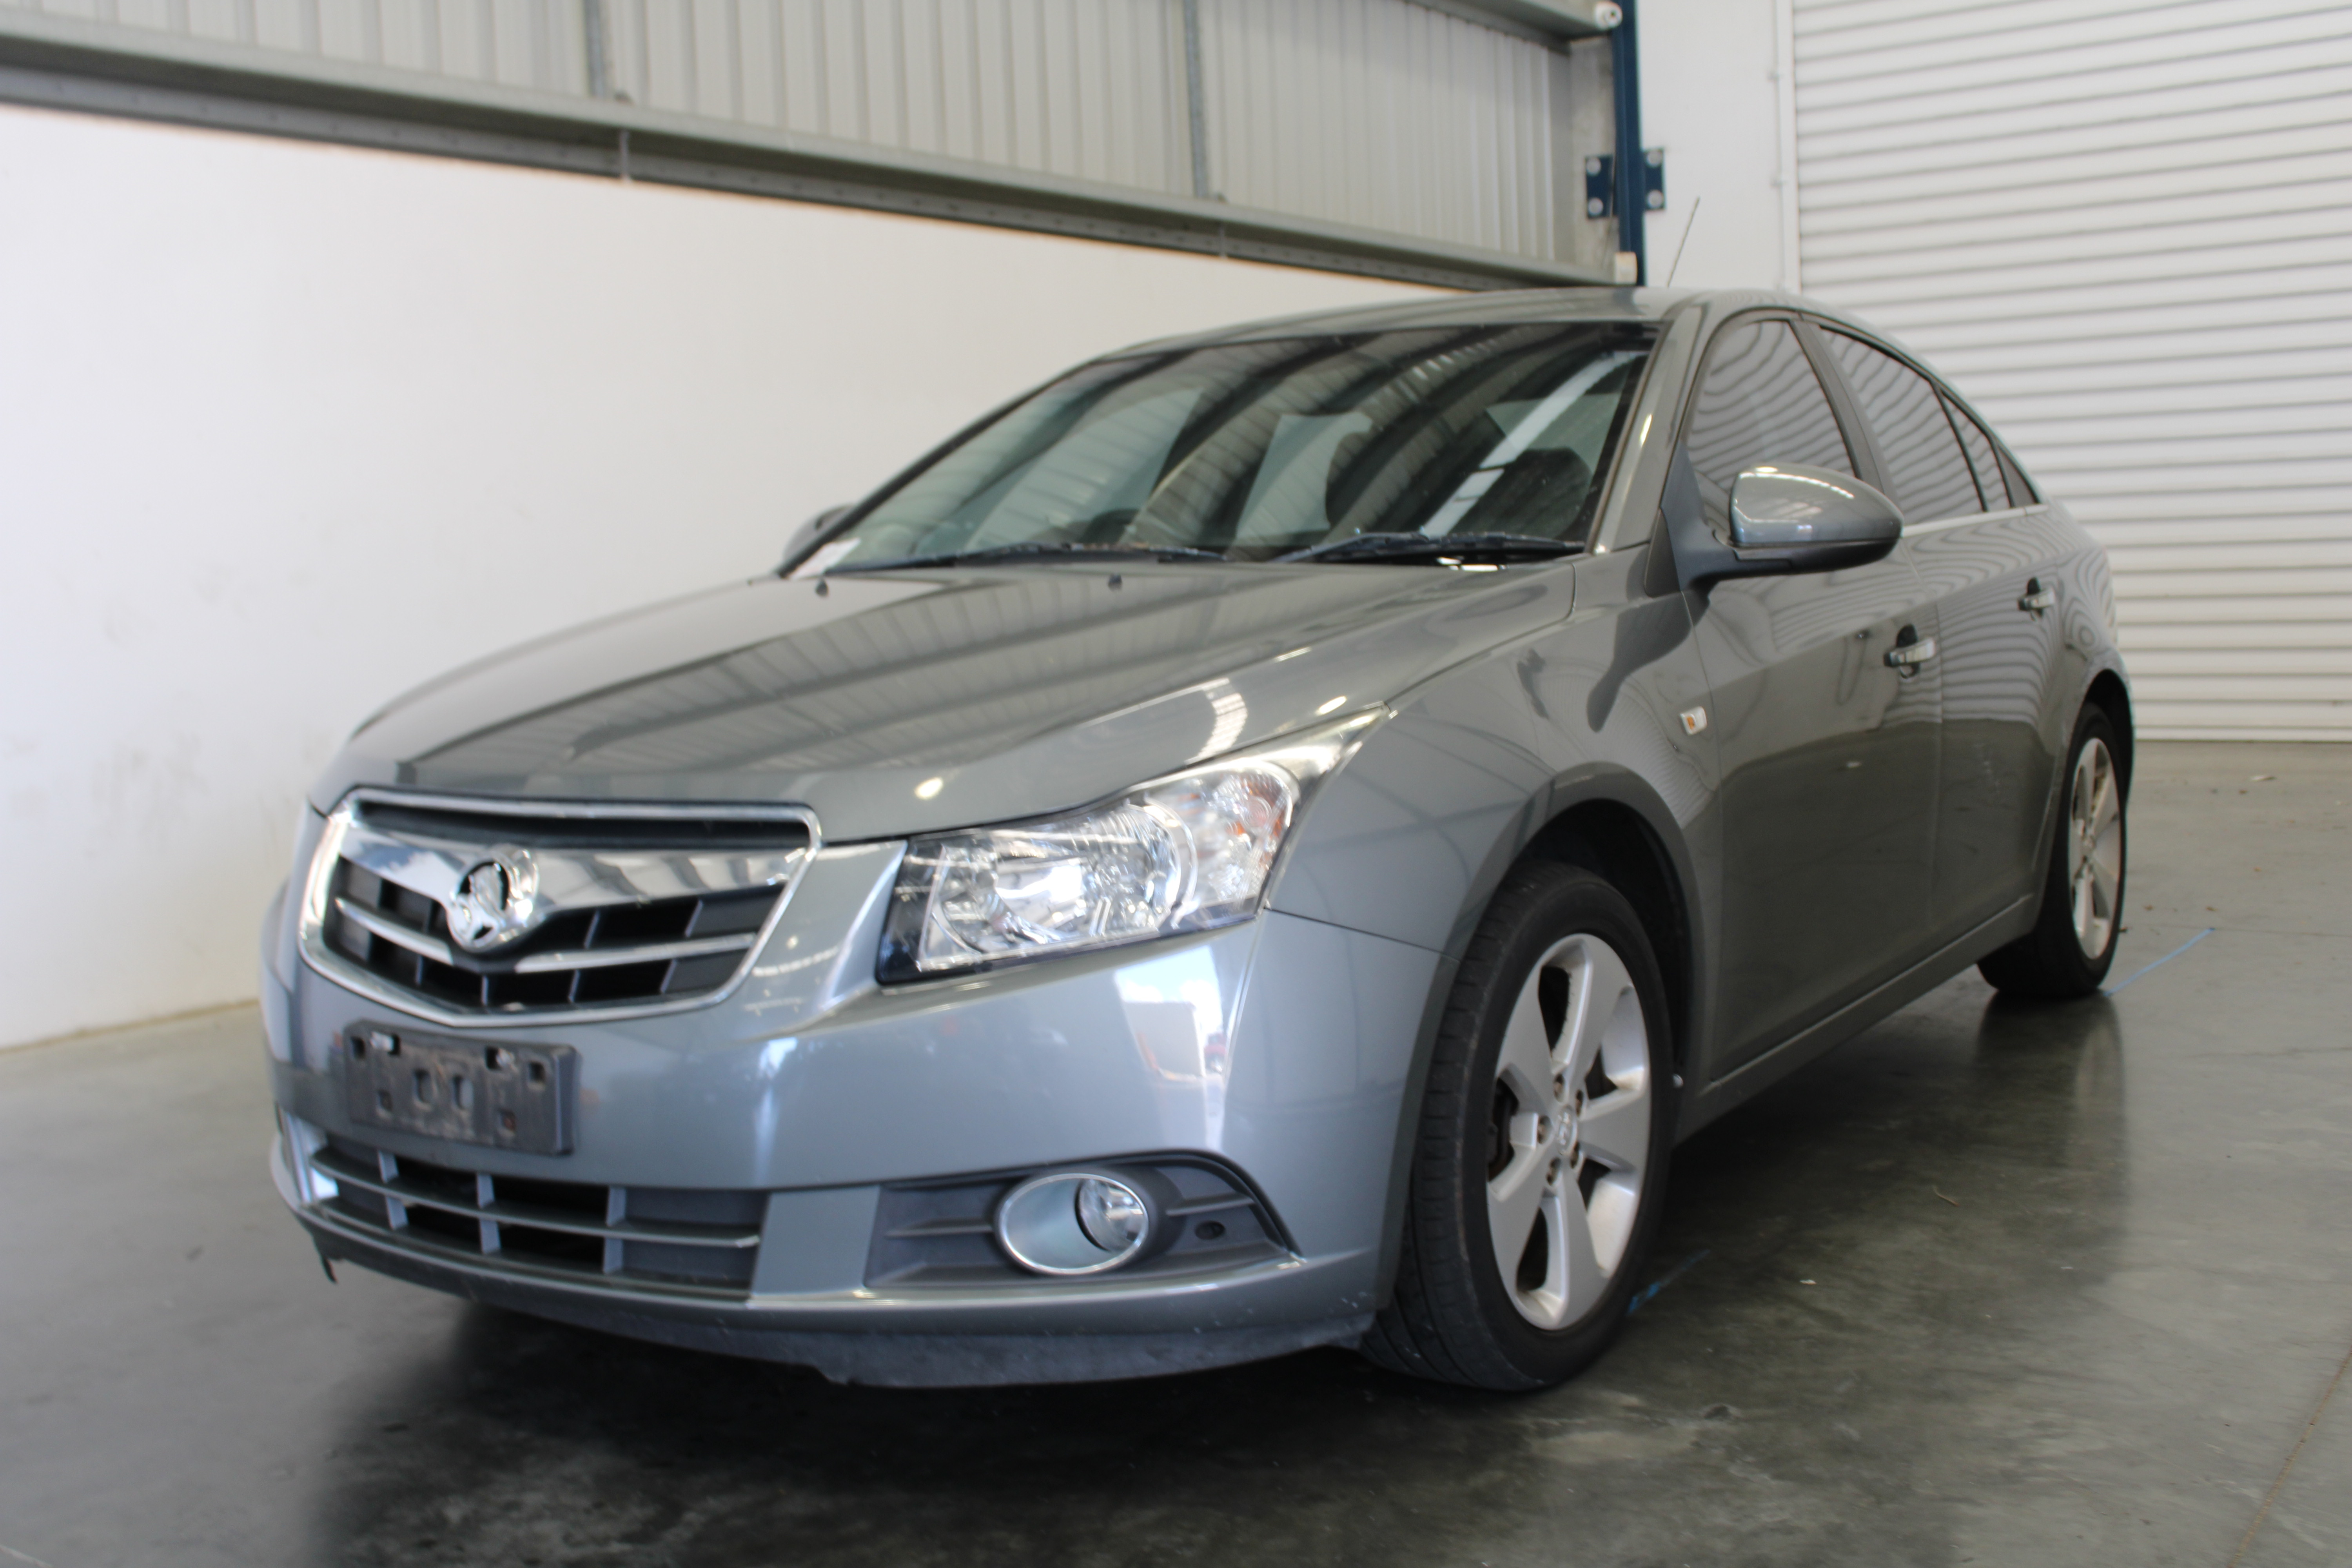 2010 Holden Cruze CDX JG Automatic Sedan